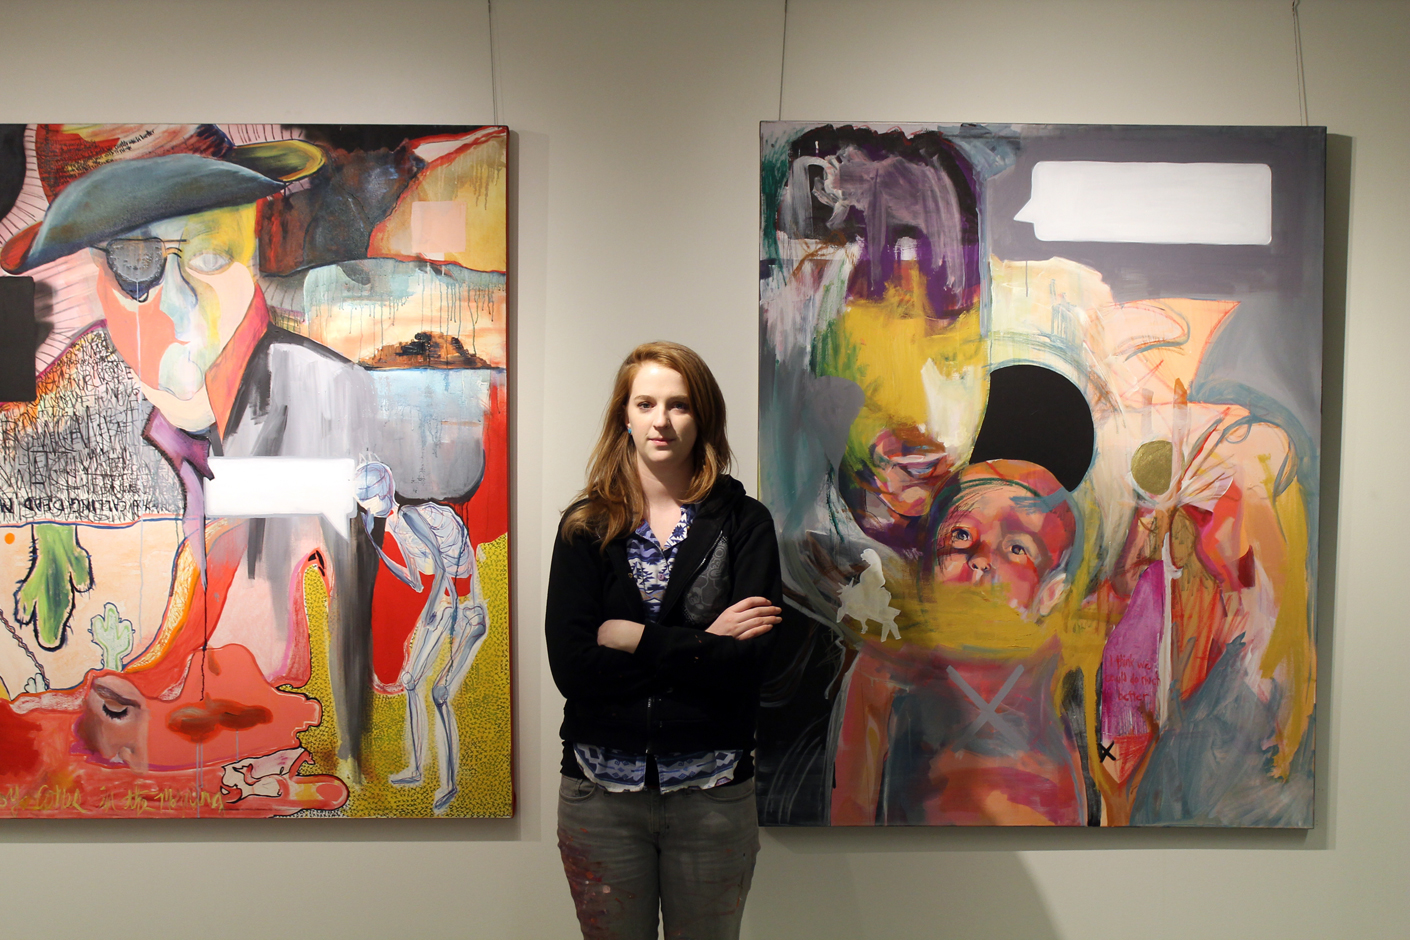 Amy Hughes Braden in front of her work